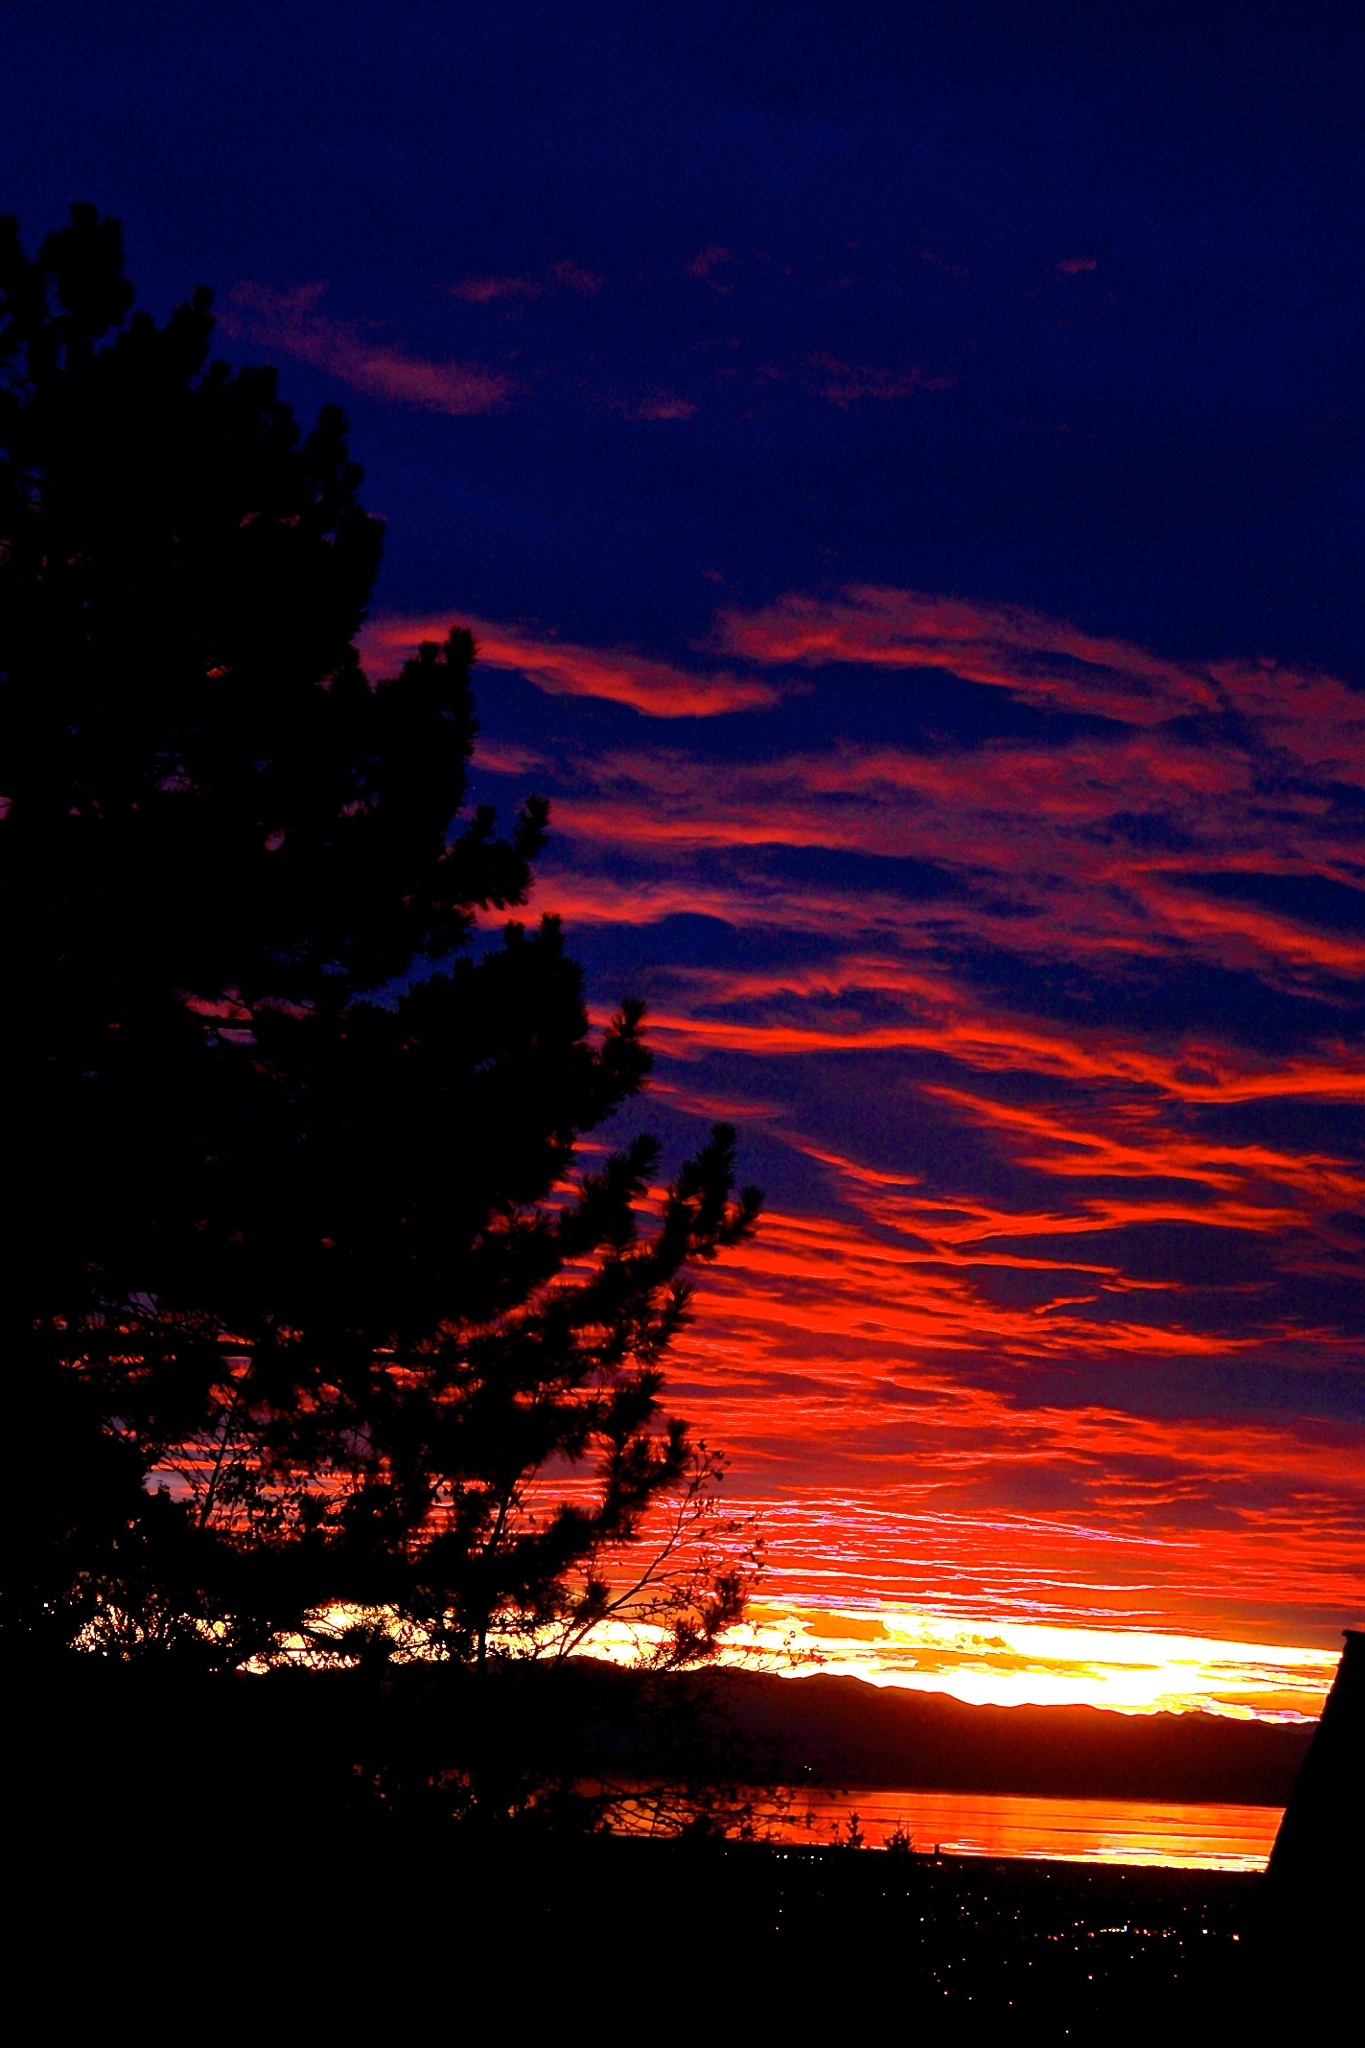 Red Sky in the night- by Steven Thomas Densley